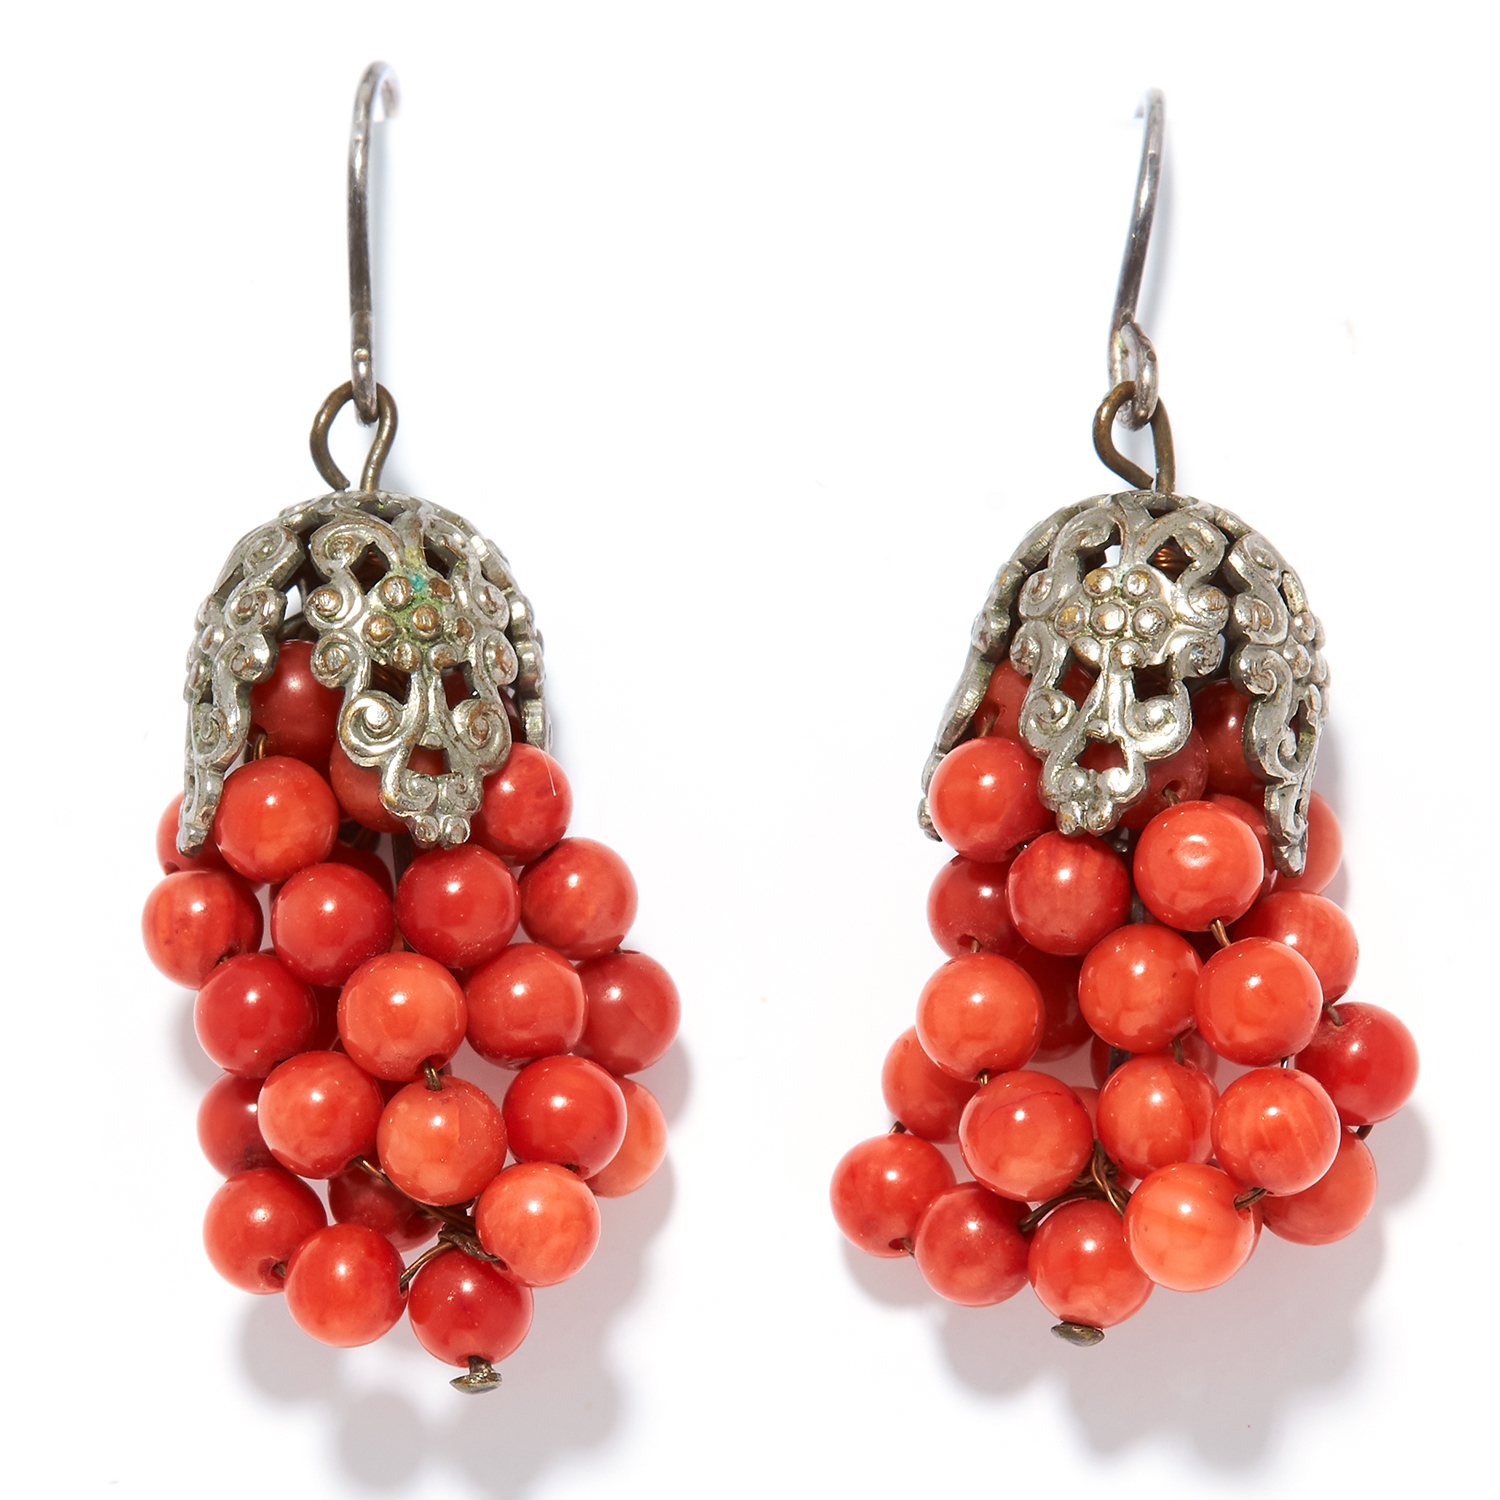 A PAIR OF CORAL EARRINGS in silver, suspending rows of coral beads, unmarked, 3.5cm, 7.30g.